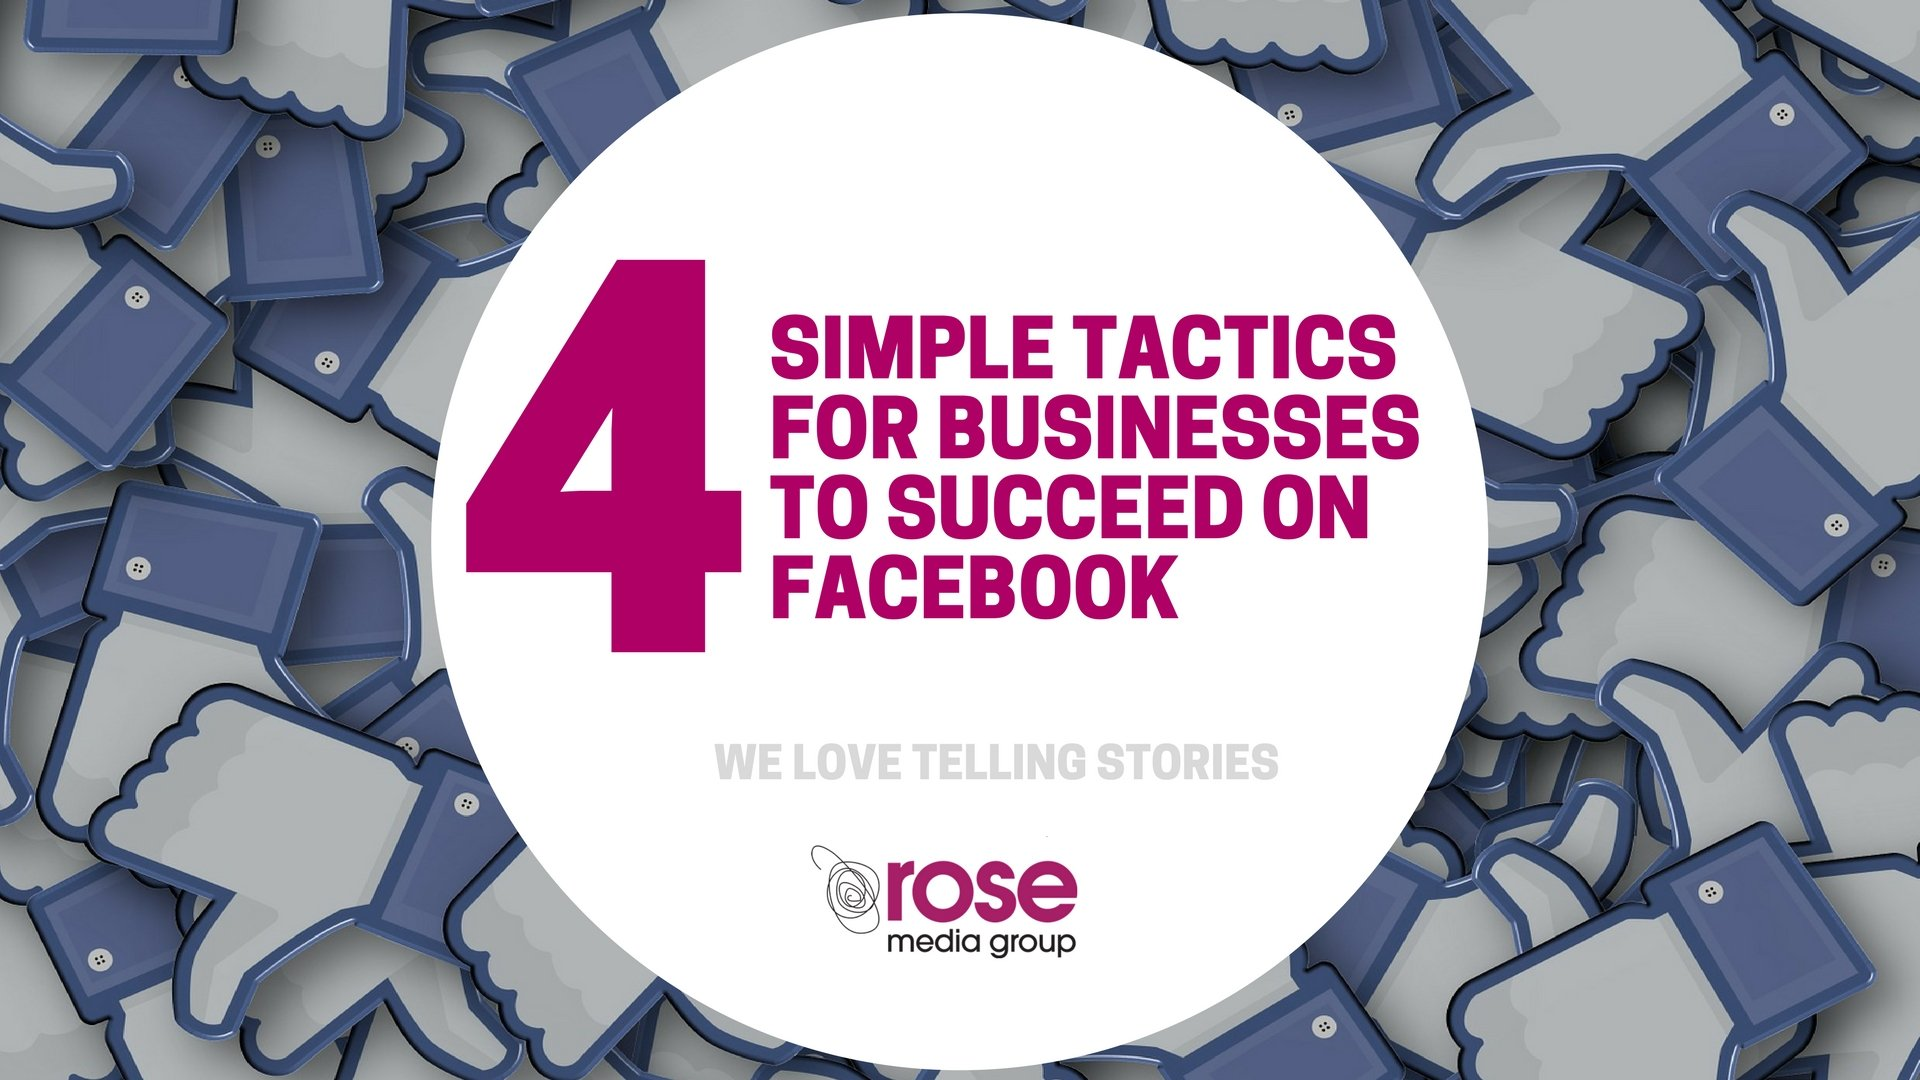 4 Simple tactics for businesses to succeed on Facebook